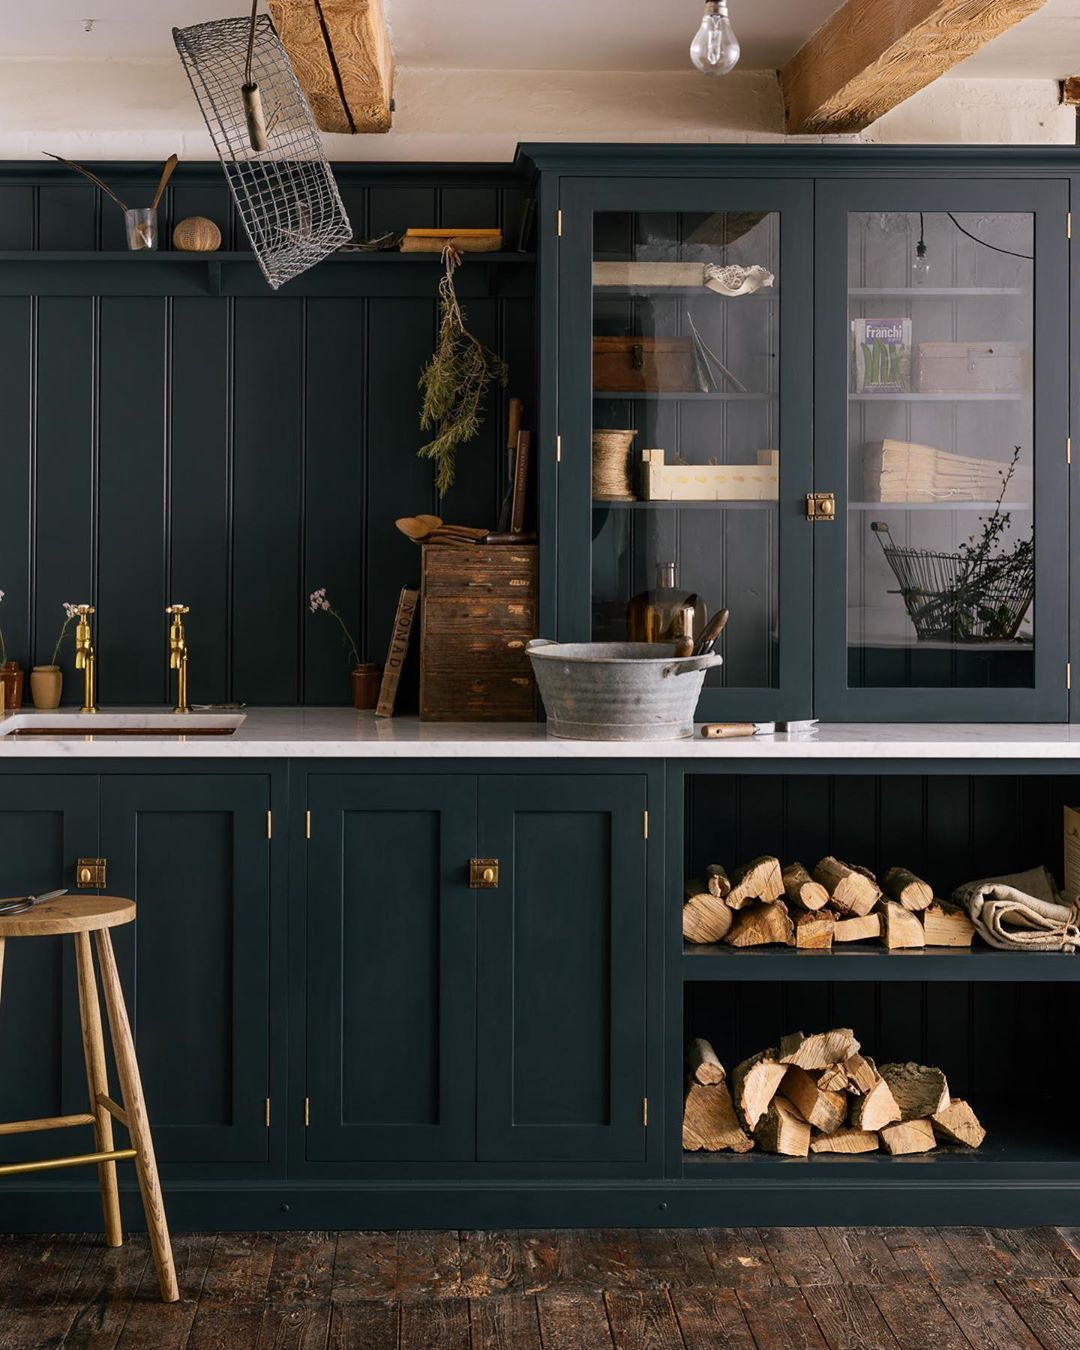 Devol Kitchens On Instagram The Cotes Mill Shaker Utility Room Is Completely Fitted And Features Our In 2020 With Images Kitchen Renovation Green Kitchen Cabinets Kitchen Design